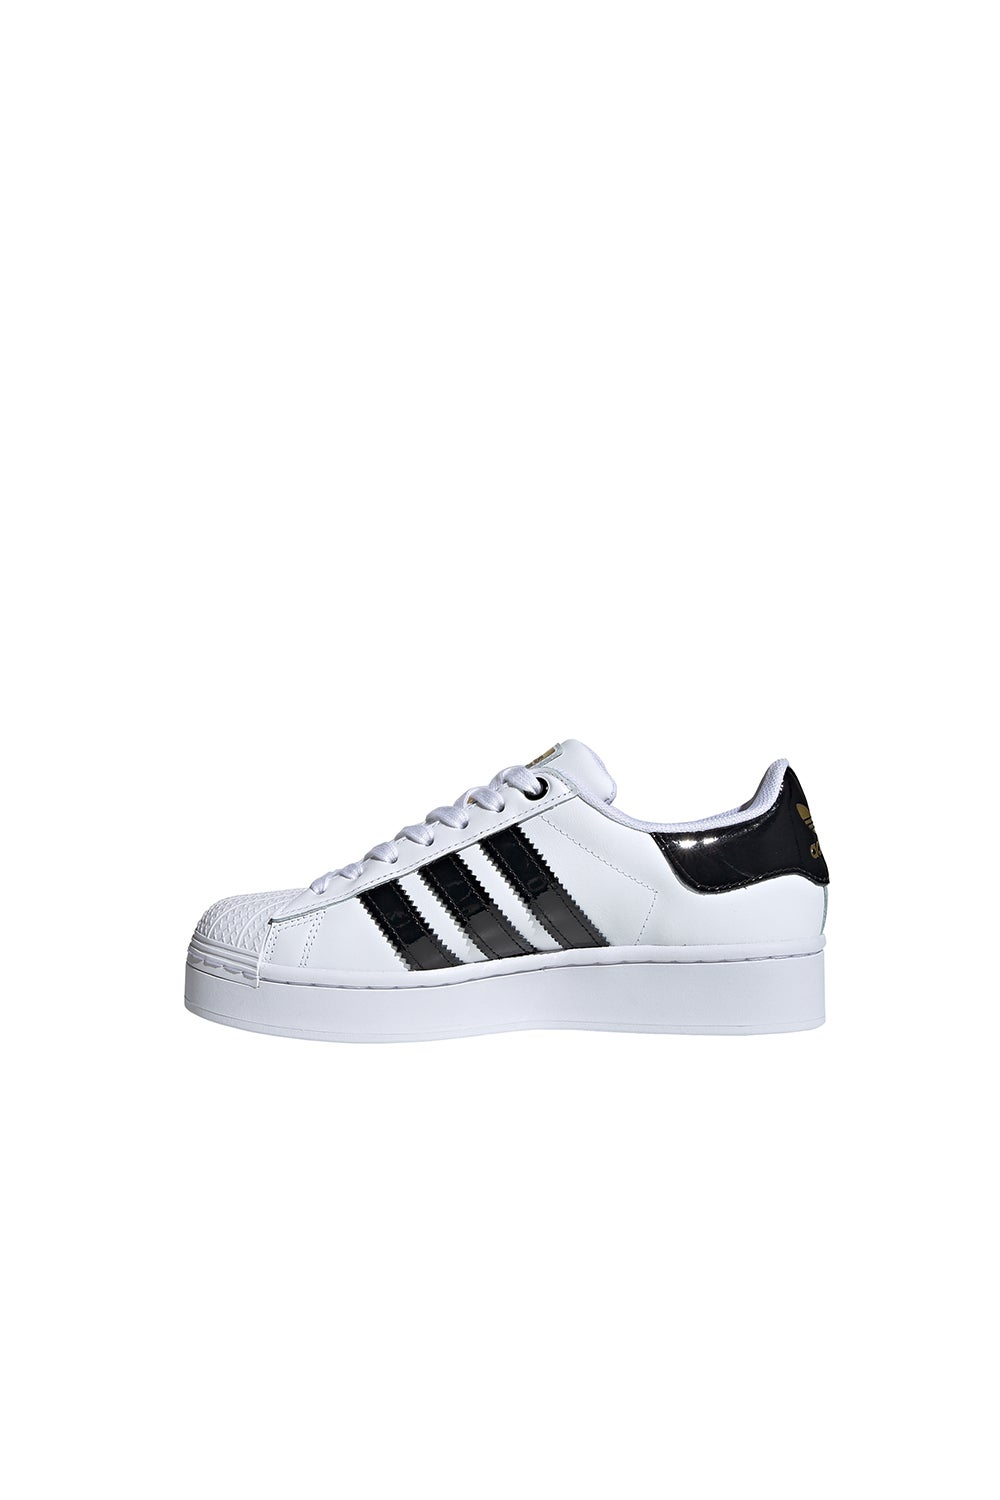 adidas Superstar Bold W White/Black/Gold